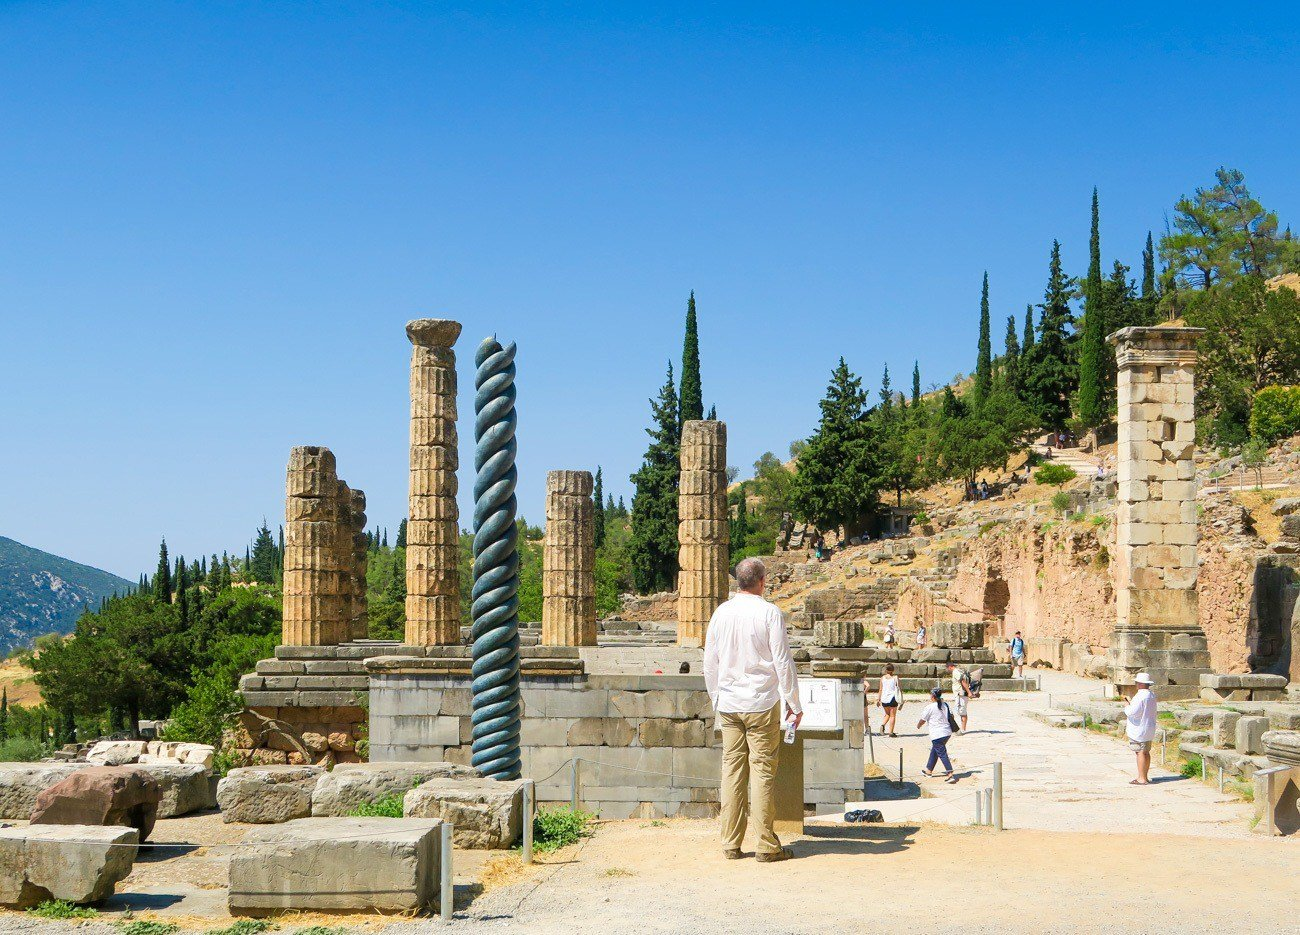 The Temple of Apollo is where the Oracle of Delphi was.